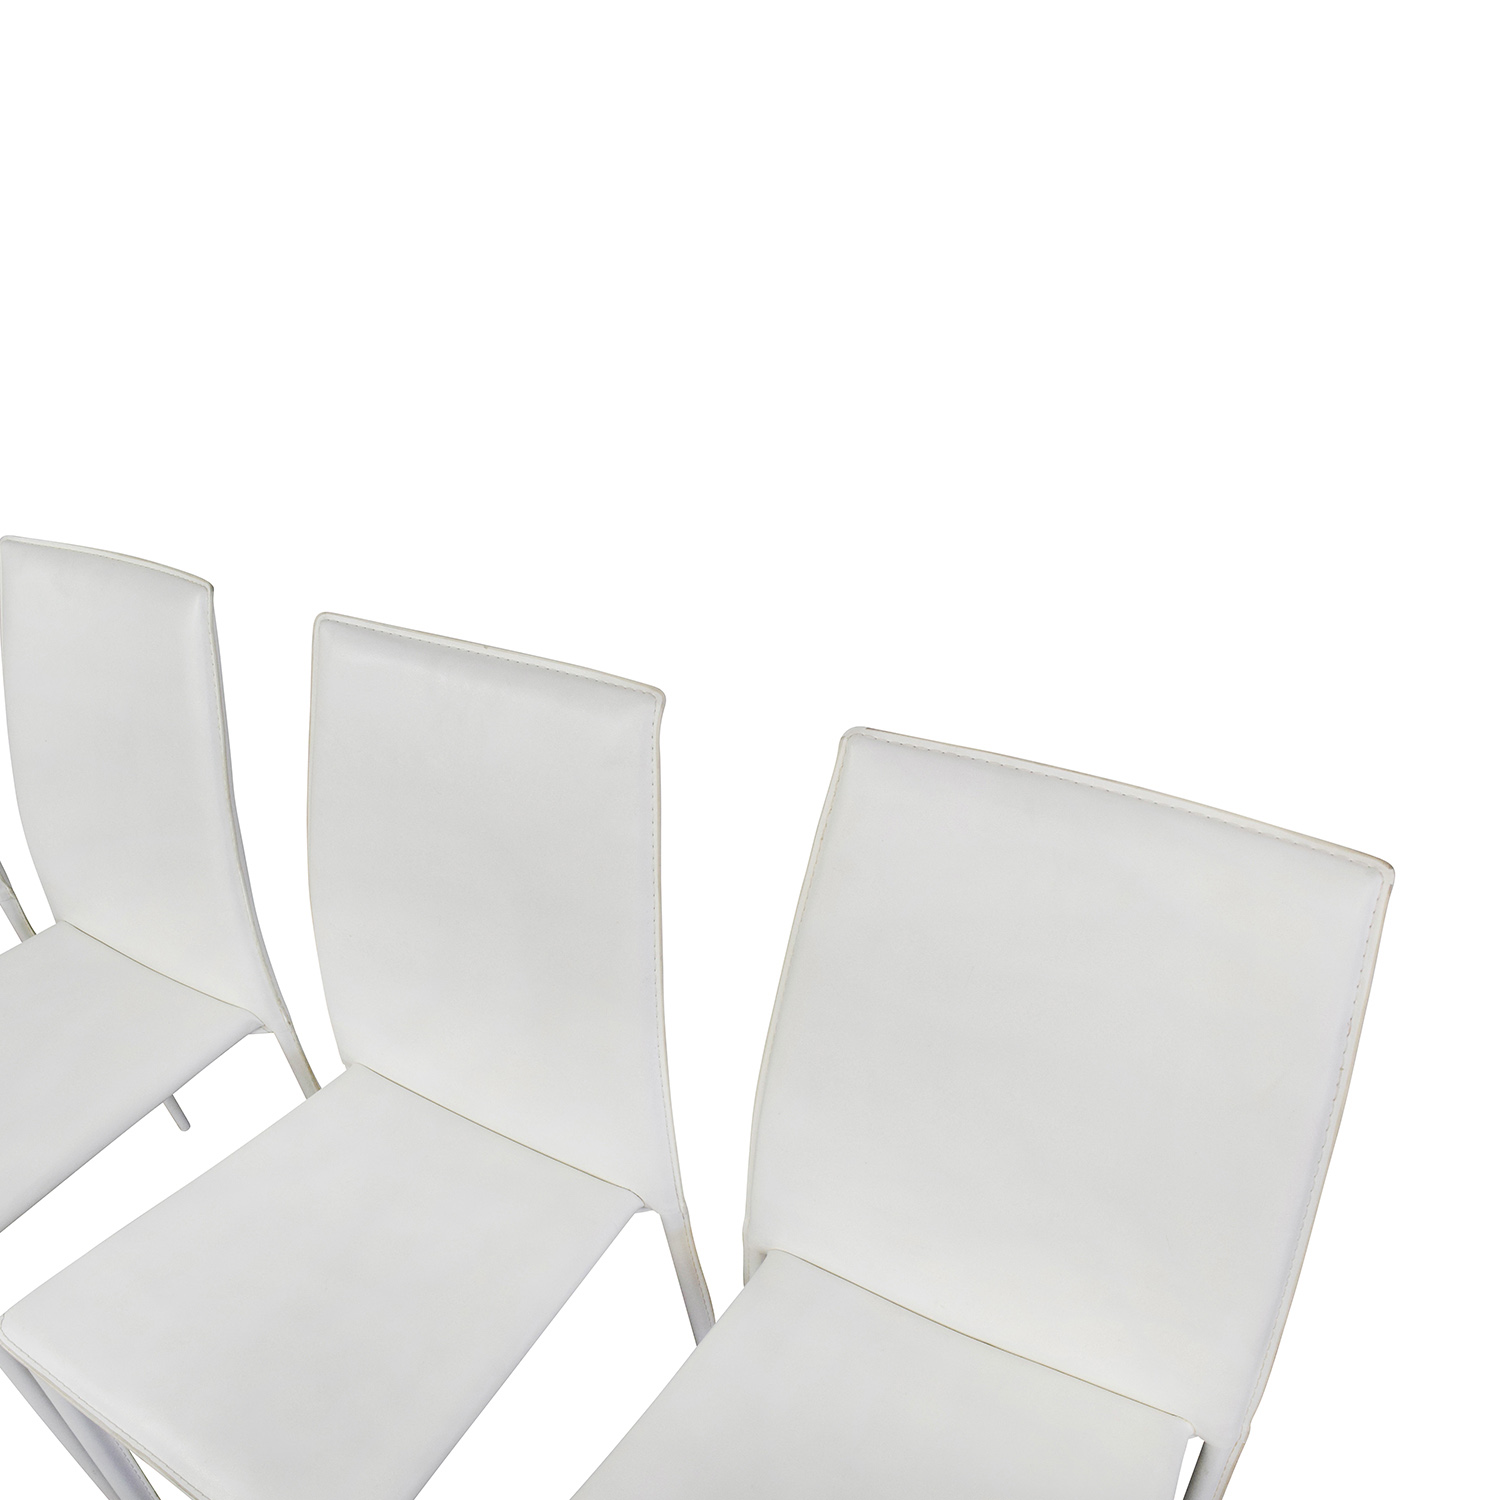 all modern leather dining chairs revolving chair size 77 off white